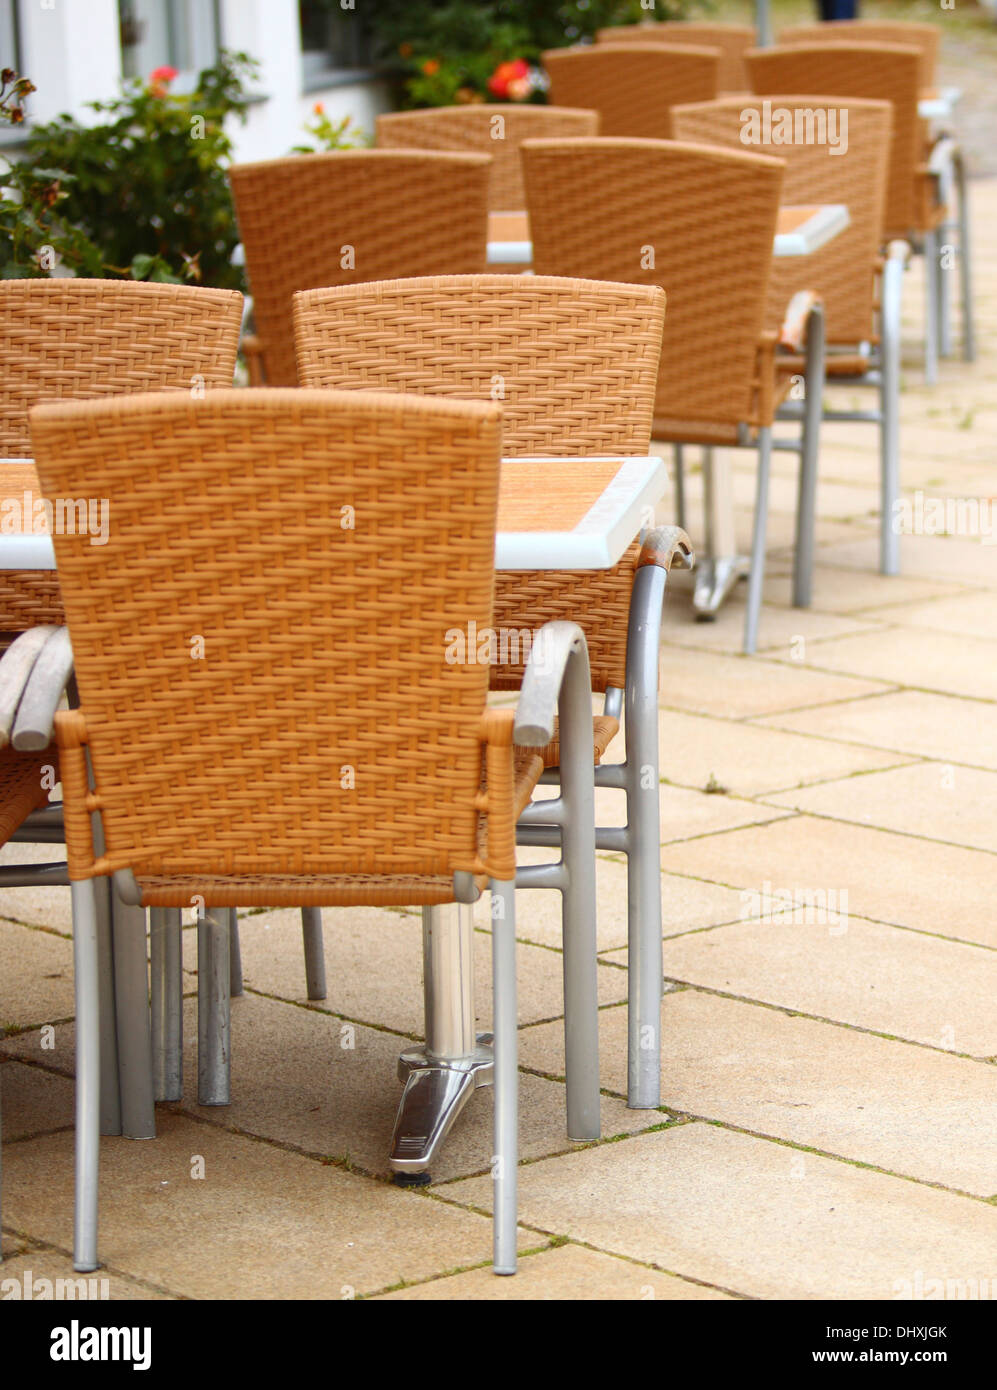 outdoor restaurant coffee terrace open air cafe chairs with table